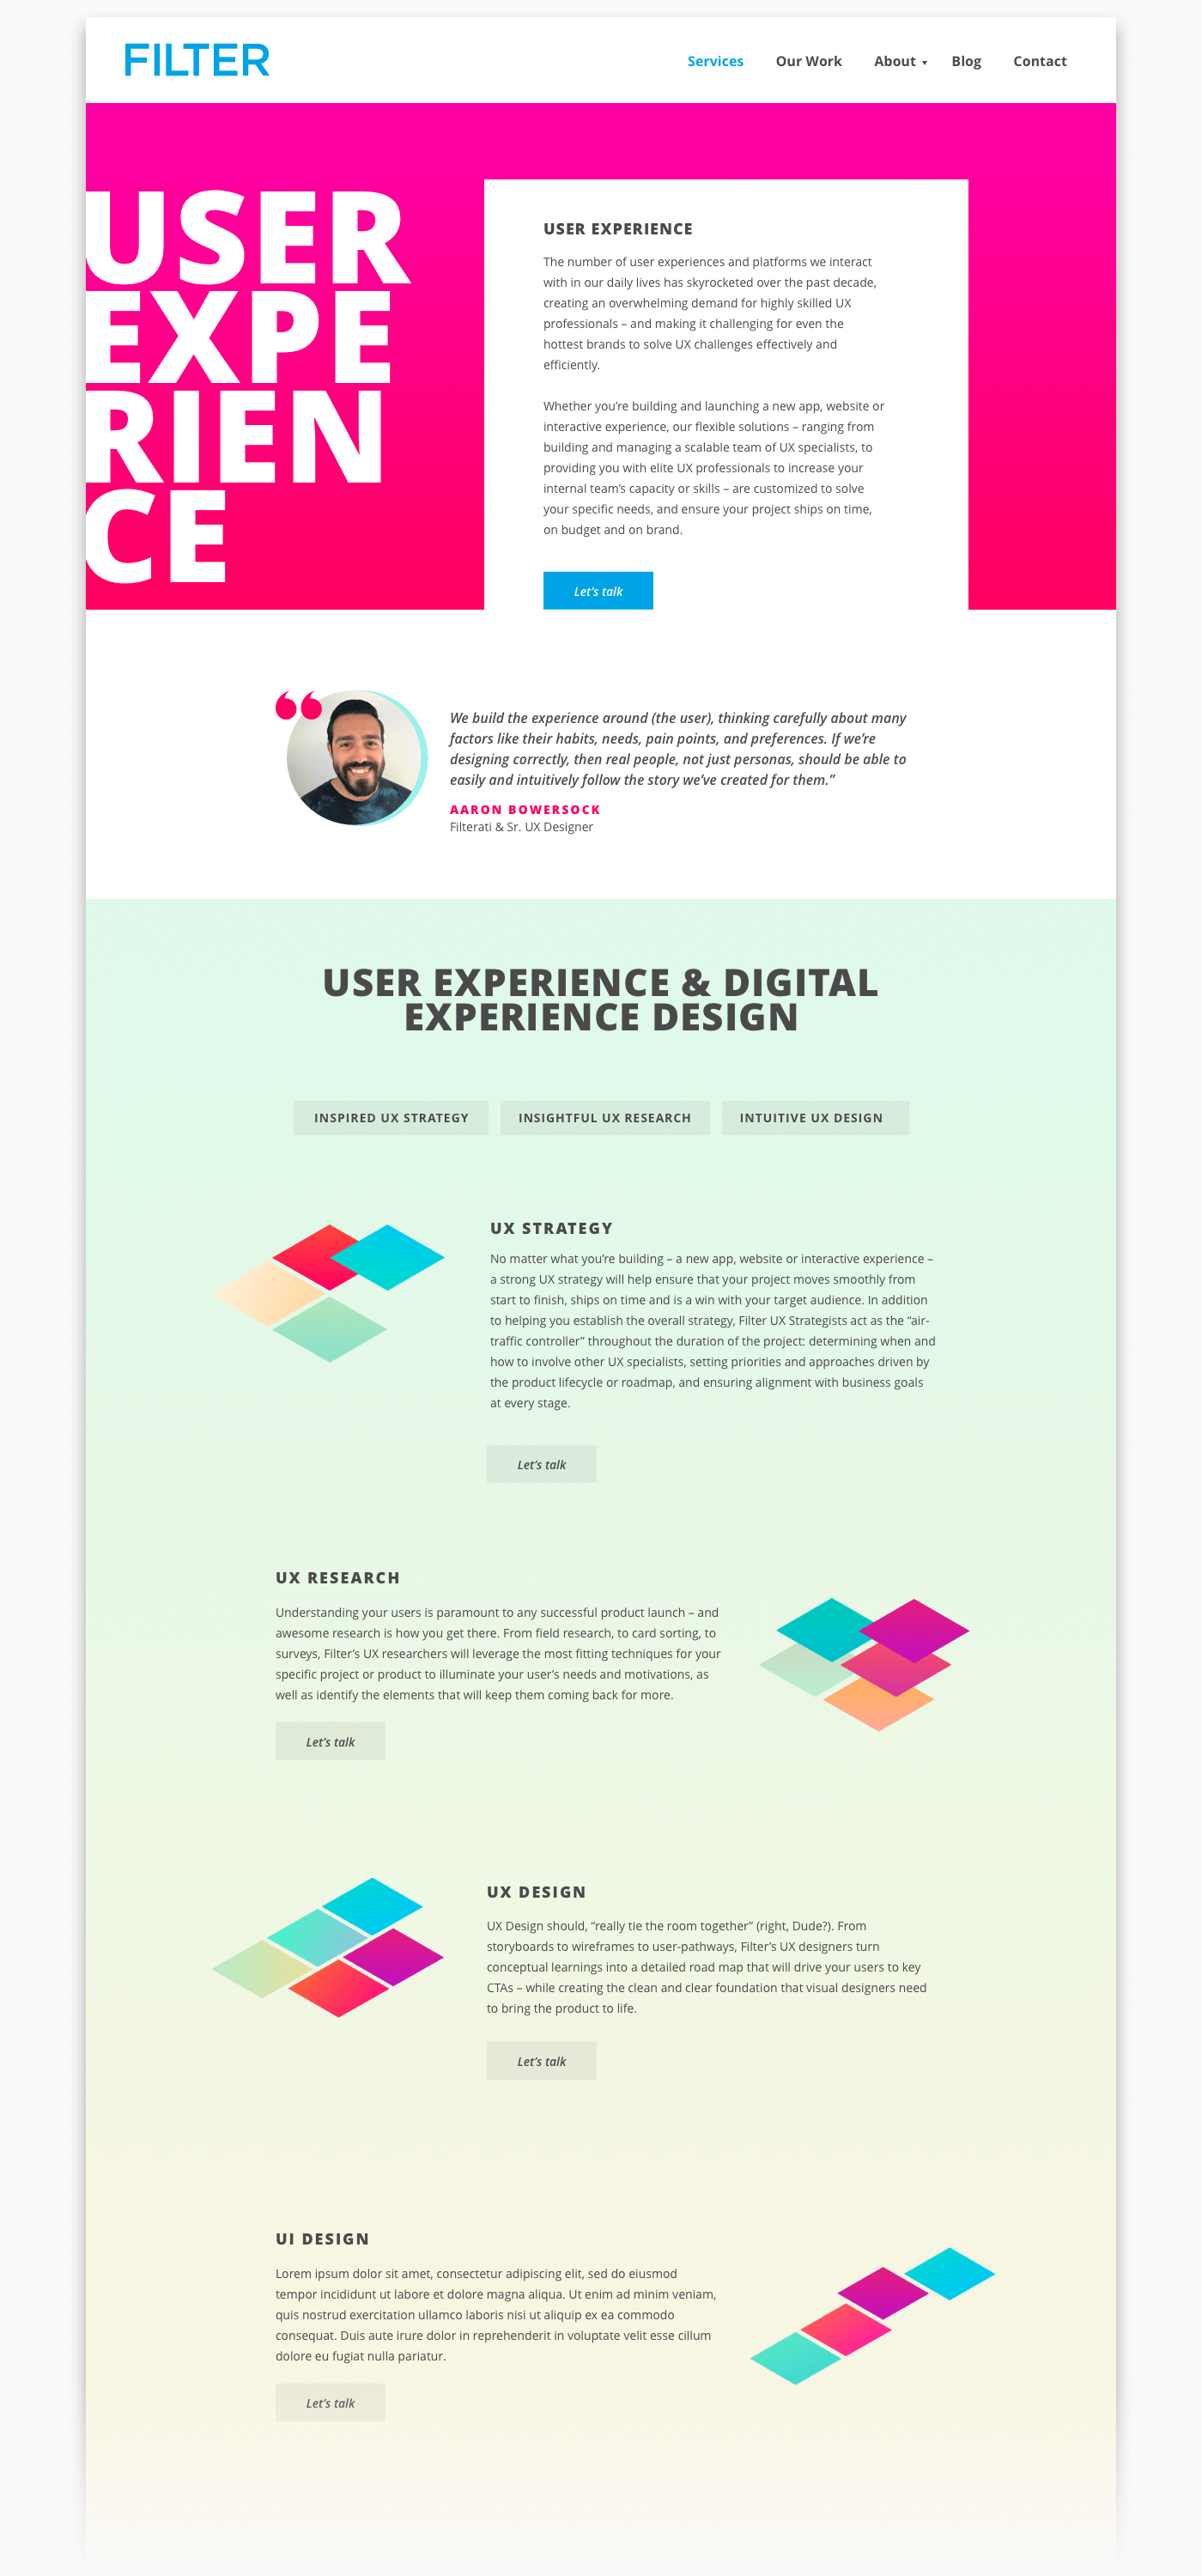 Filter-Comps-Slide03-userExperience.png